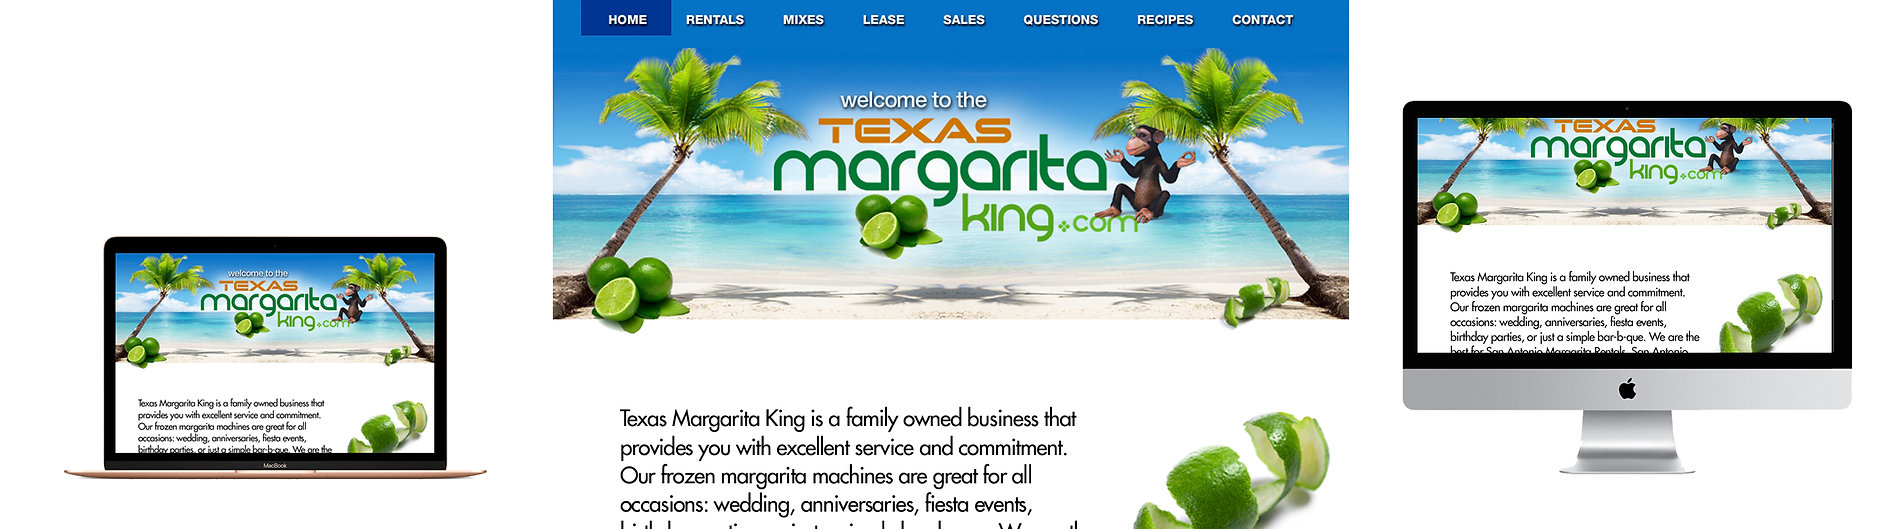 Websites_Stories_TX Margarita King.jpg